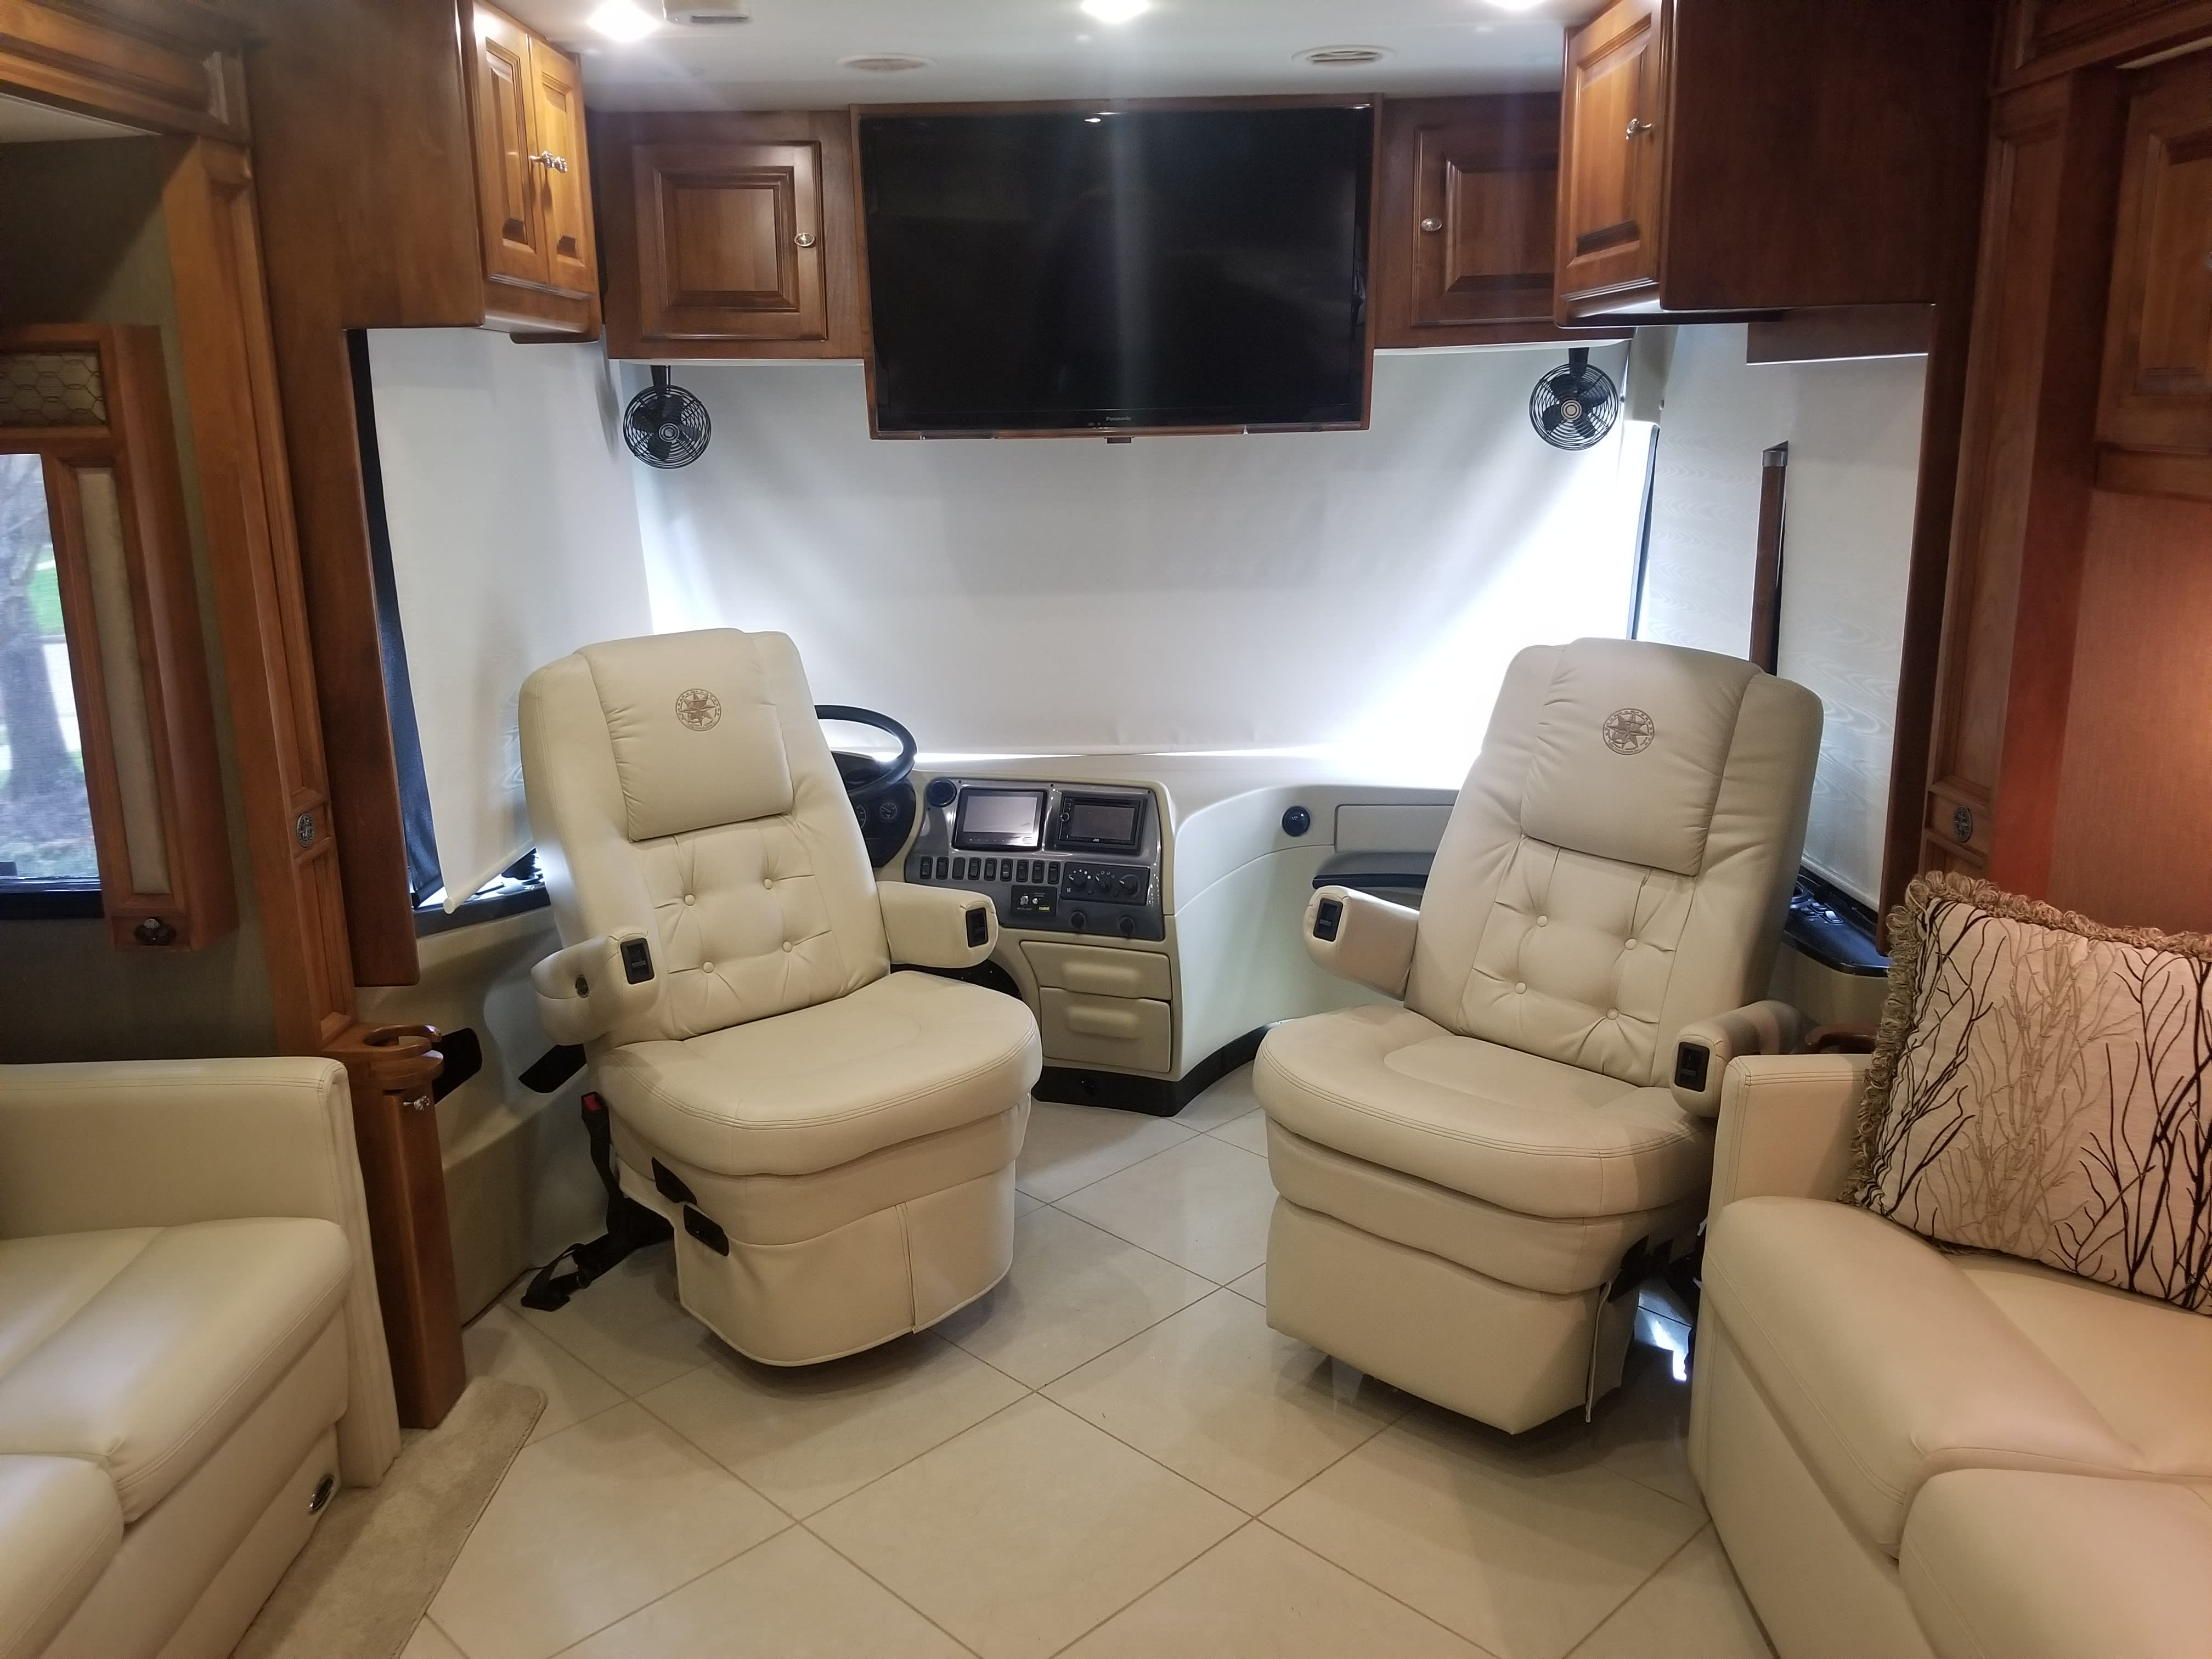 At site, comforts of relaxing in chairs. Tiffin Motorhomes Phaeton 2013